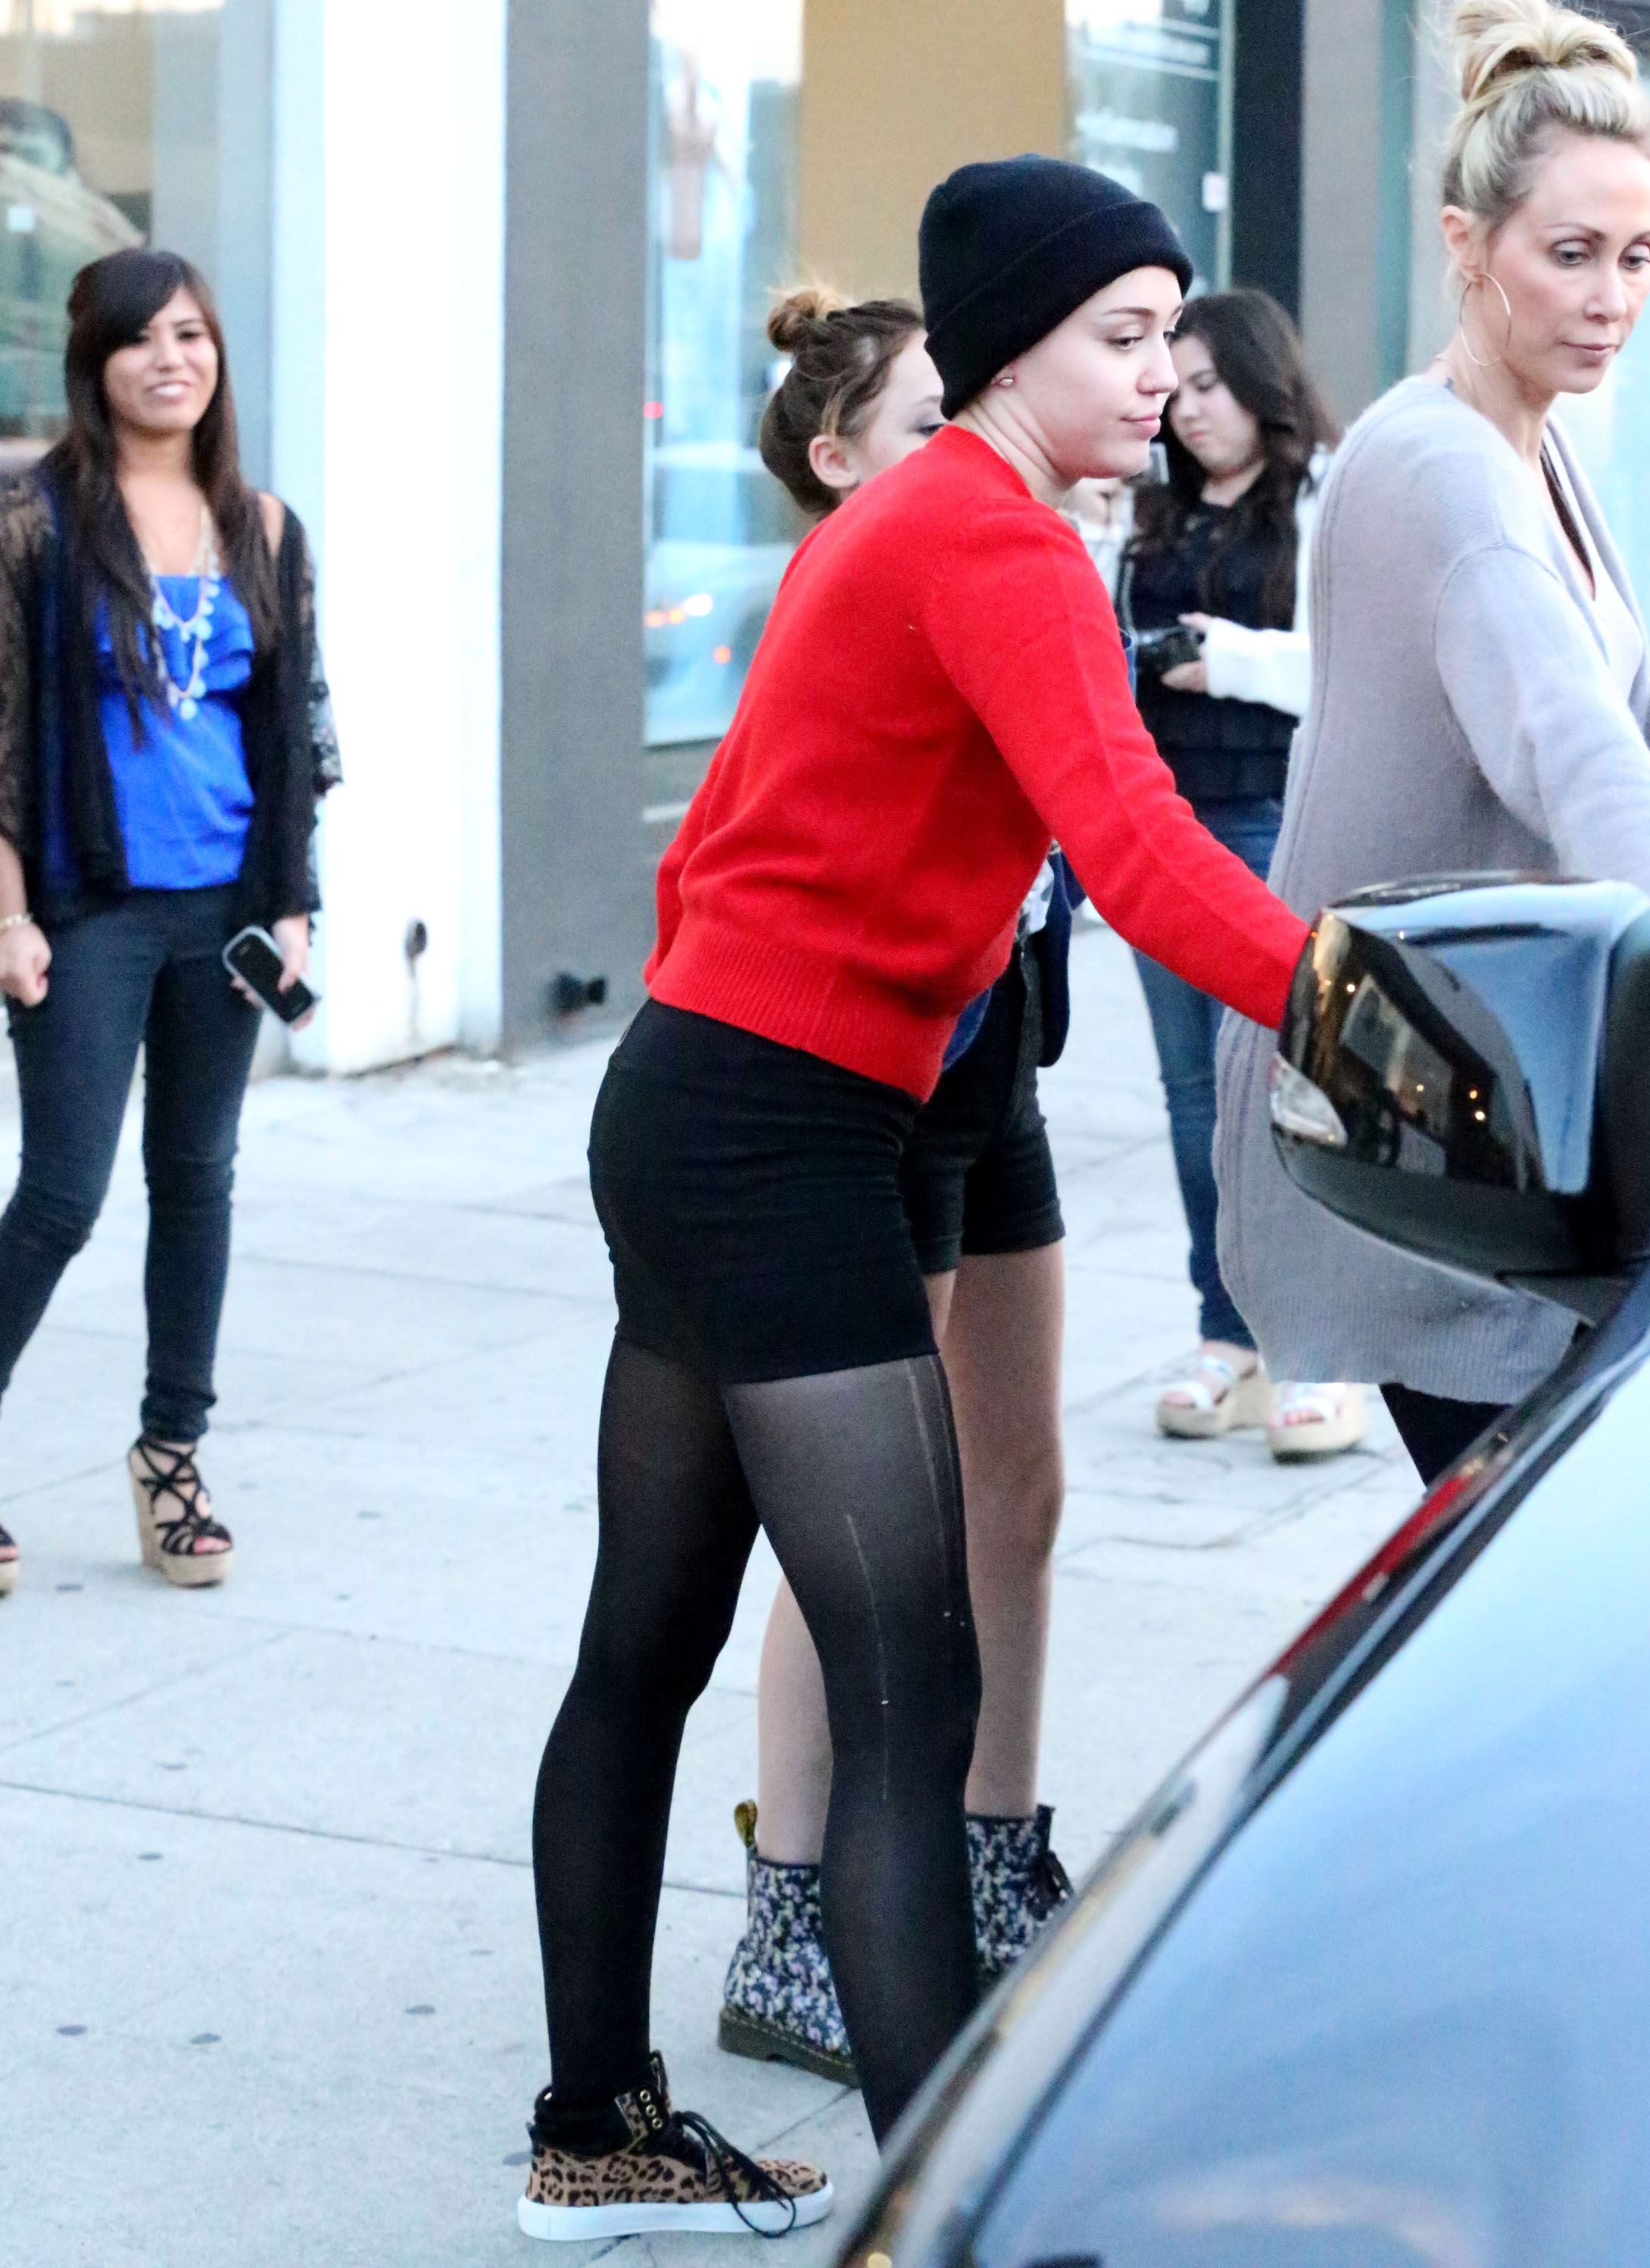 Miley Cyrus got into the car with her mom and sister.